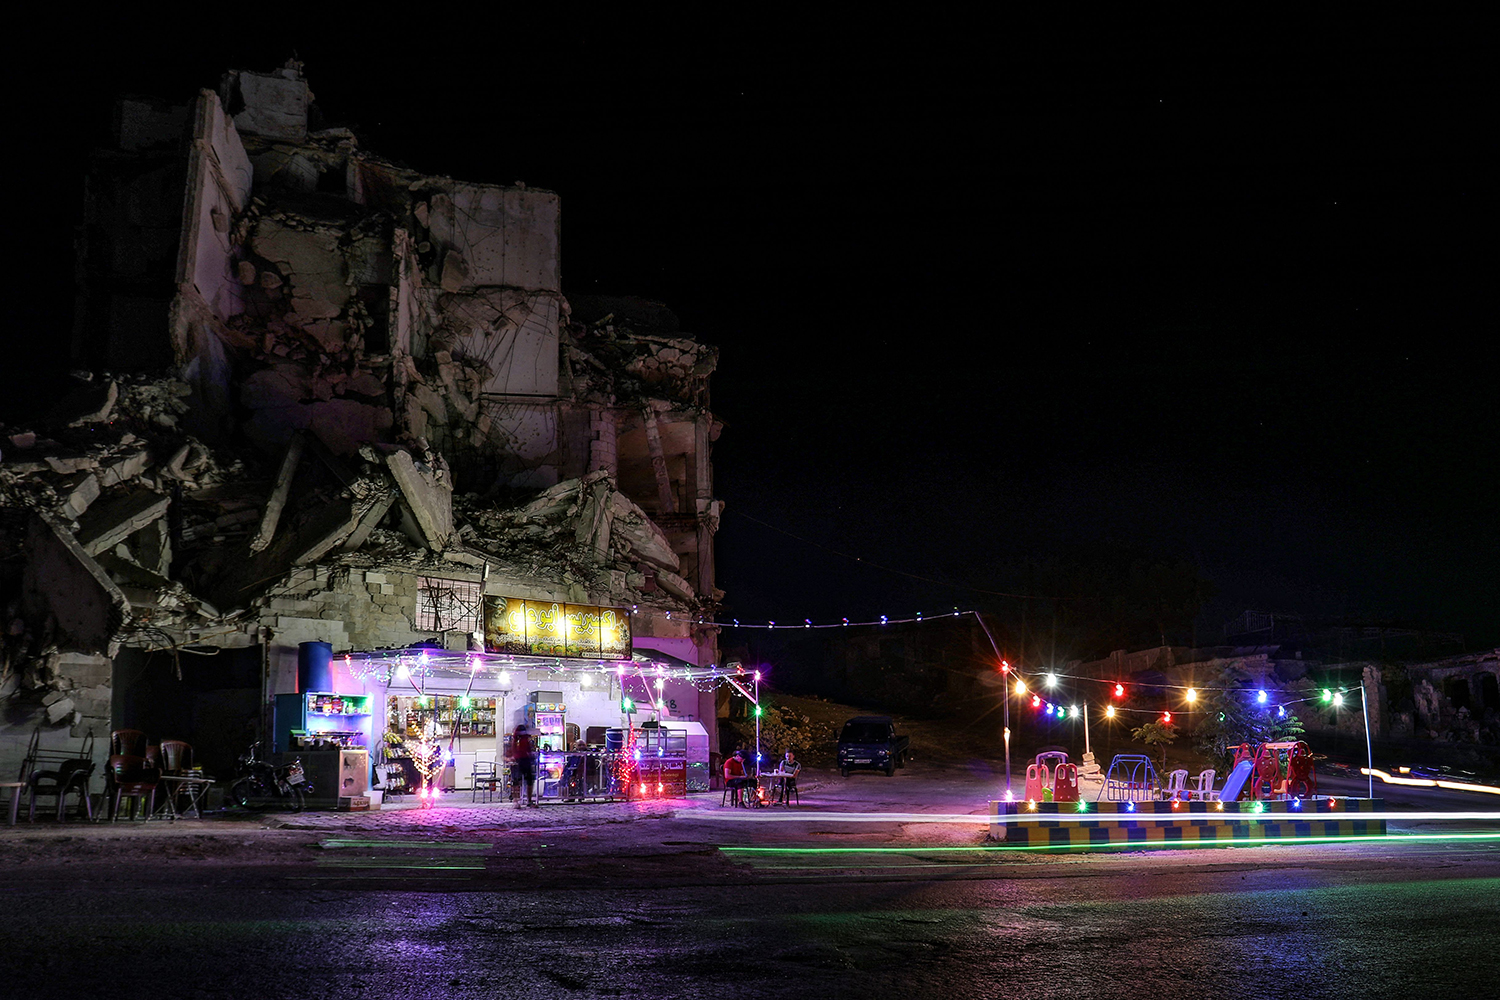 Cafe set up in front of destroyed building in Syria